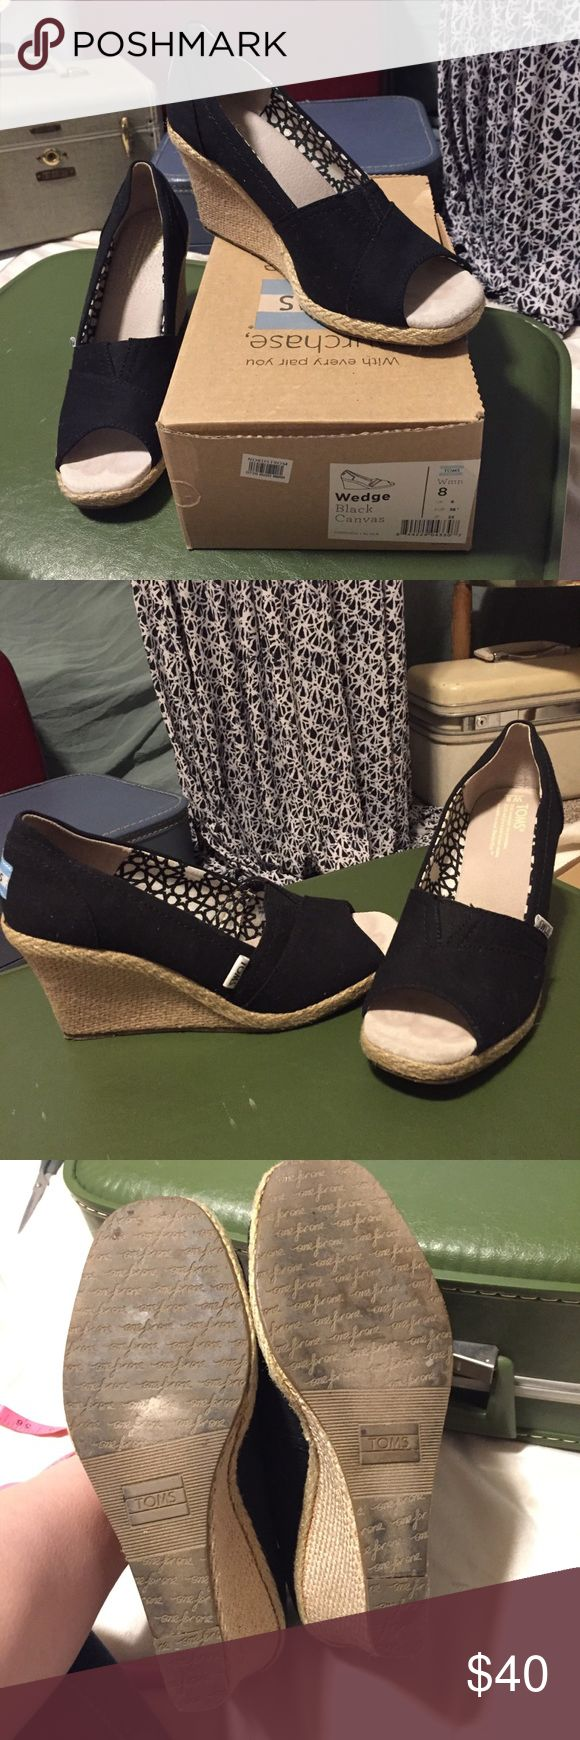 Toms Black Wedges Size 8 Worn 3x still in Awesome Used Condition. With box, Duster, and sticker! Toms Shoes Wedges